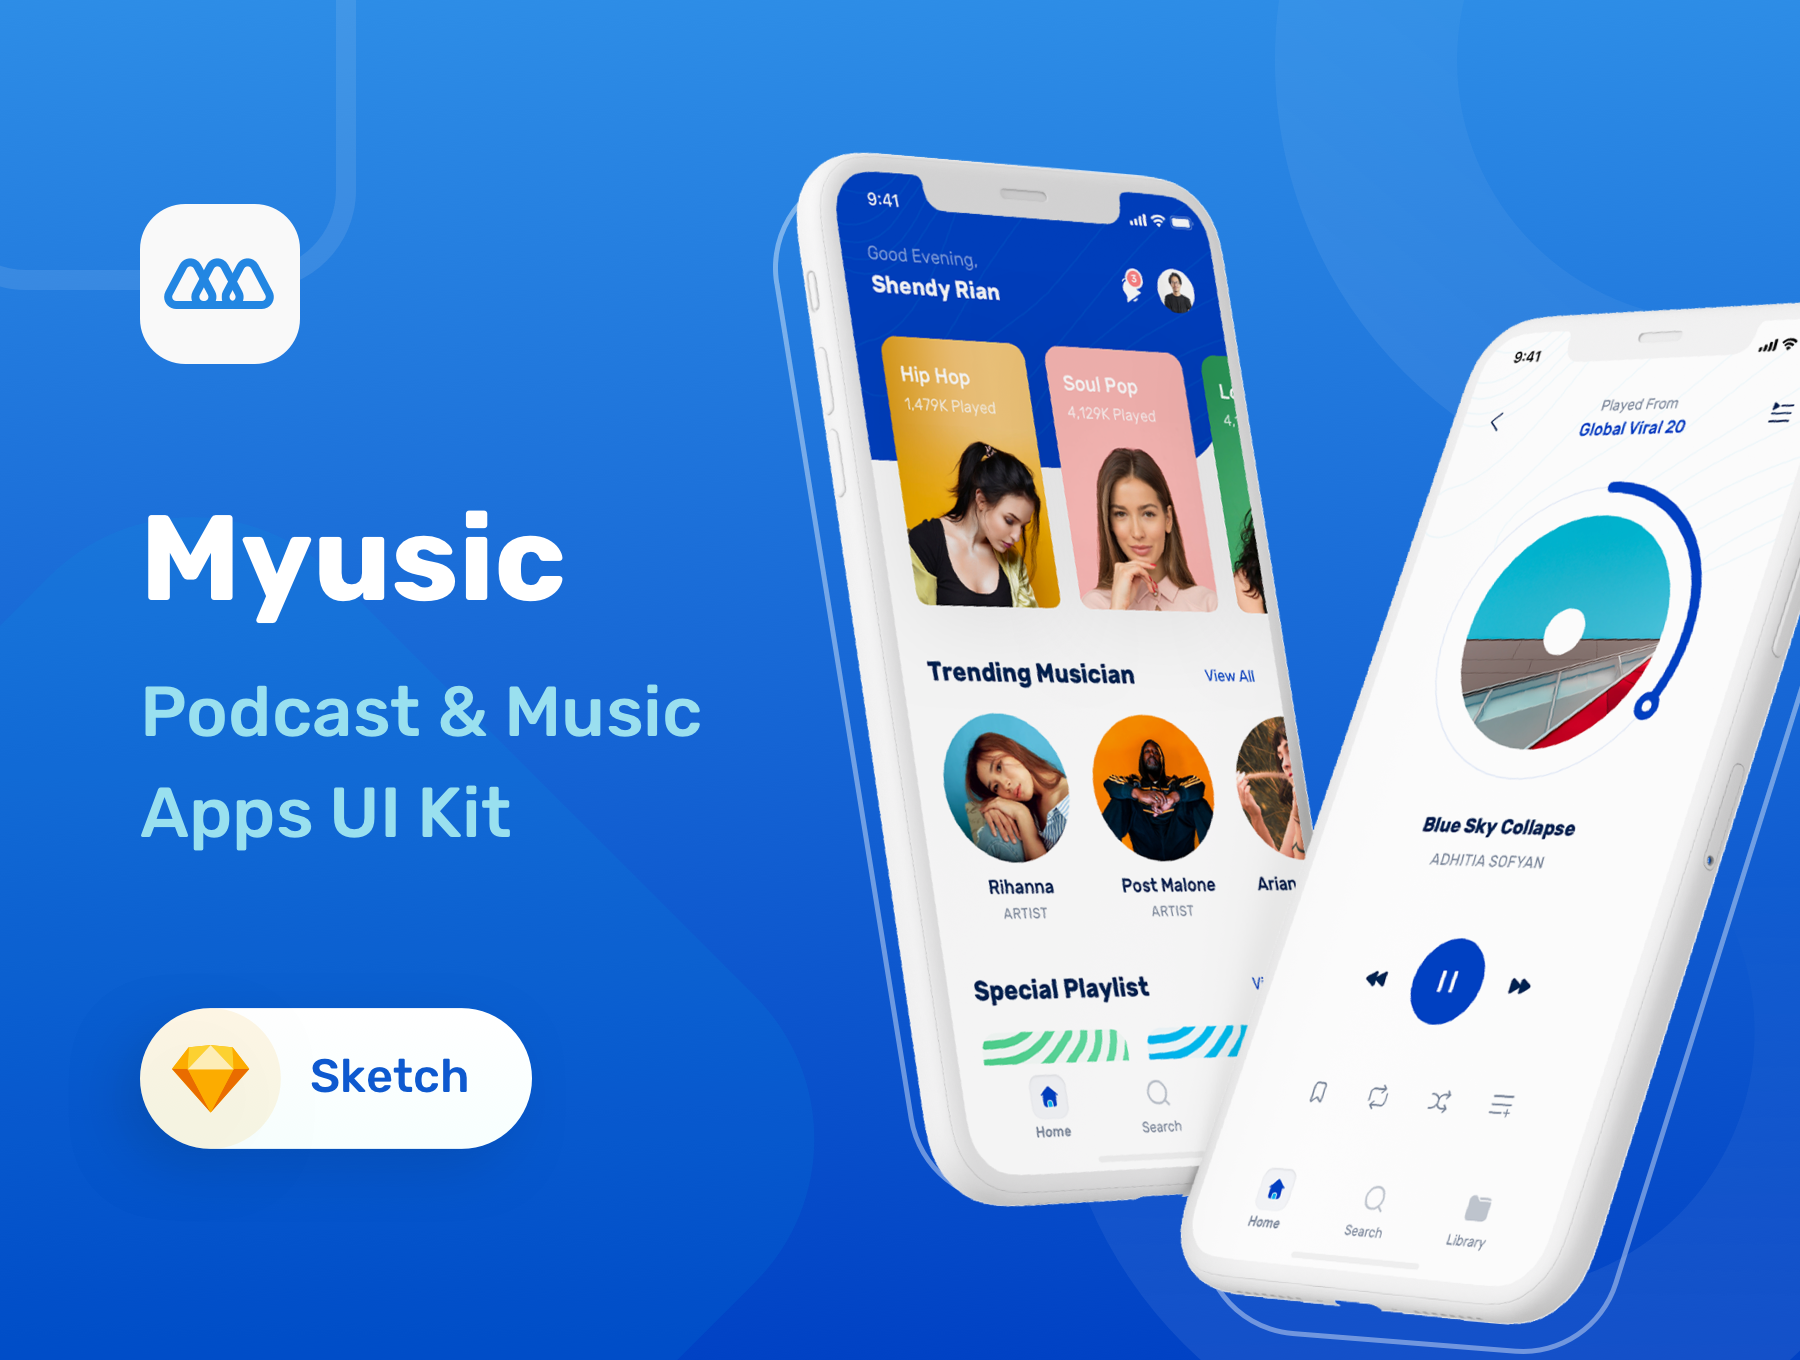 音乐和播客 APP UI kit 套装下载[Sketch] Myusic Music Podcast UI Kit